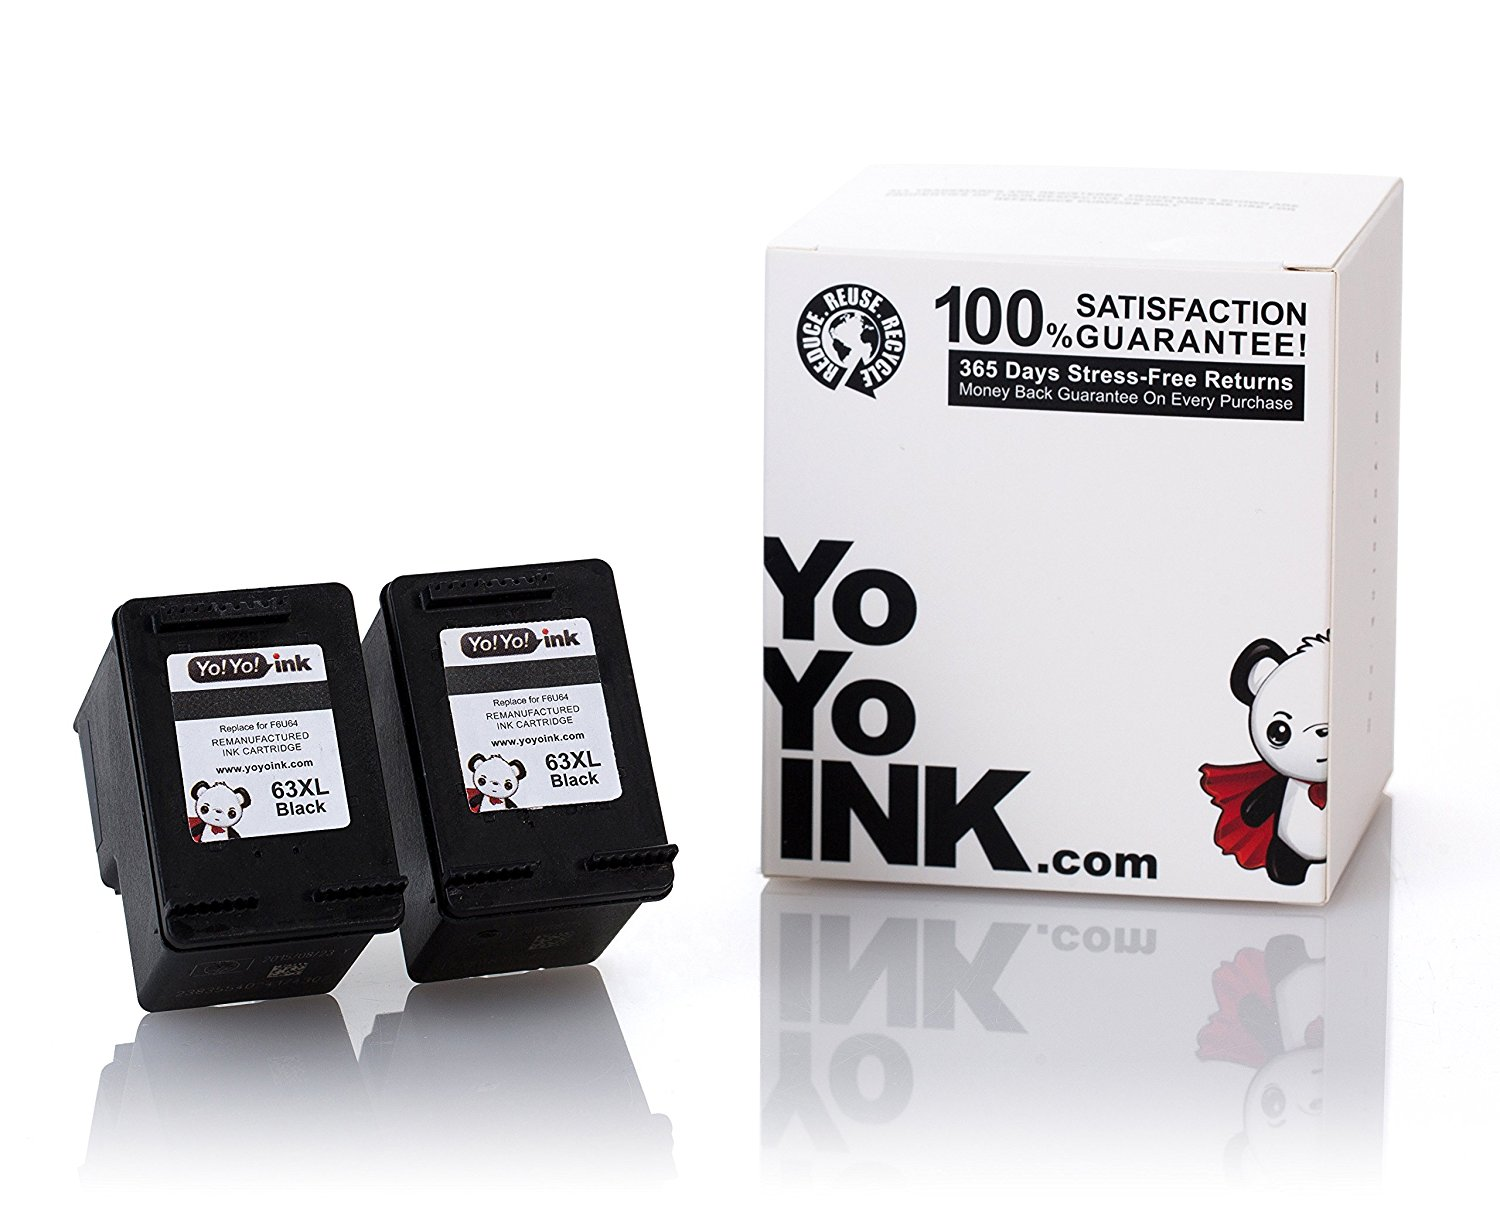 HP Printer Ink Cartridges Cheap prices + free delivery. Need ink for an HP printer? You've come to the right place. We sell ink for every HP printer, new and old, giving you one easy place to .